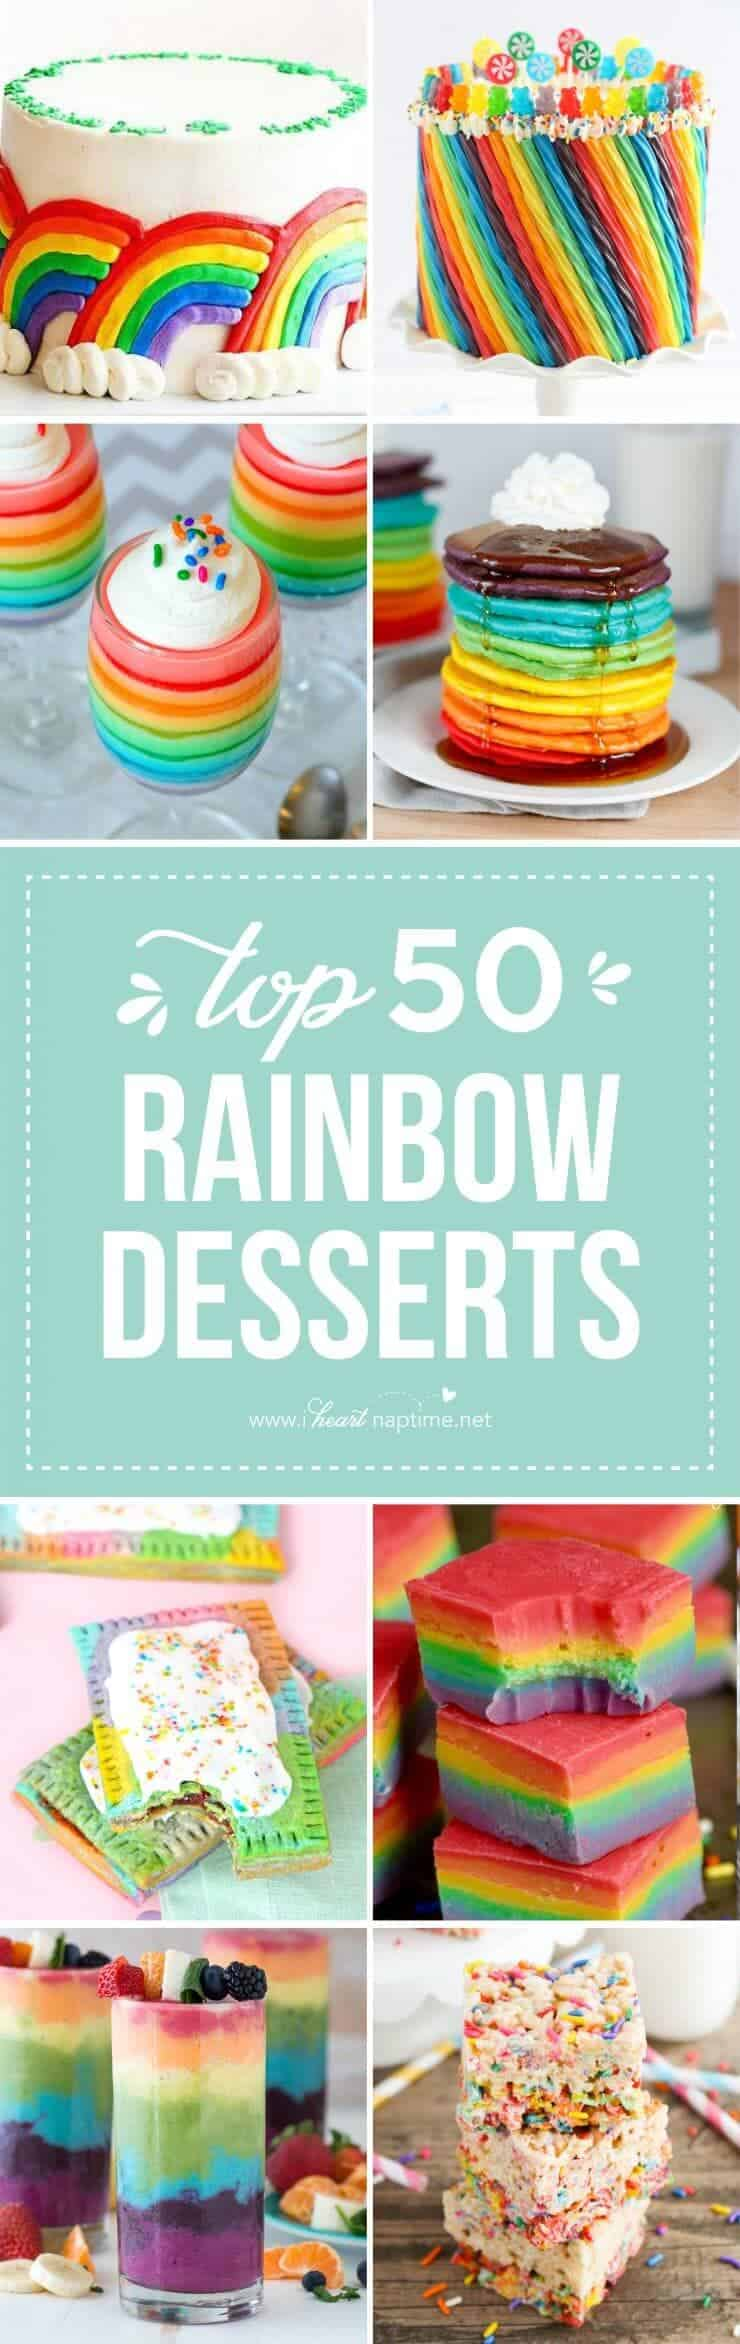 Top 50 Rainbow Desserts - the perfect way to celebrate St. Patrick's Day and welcome spring!